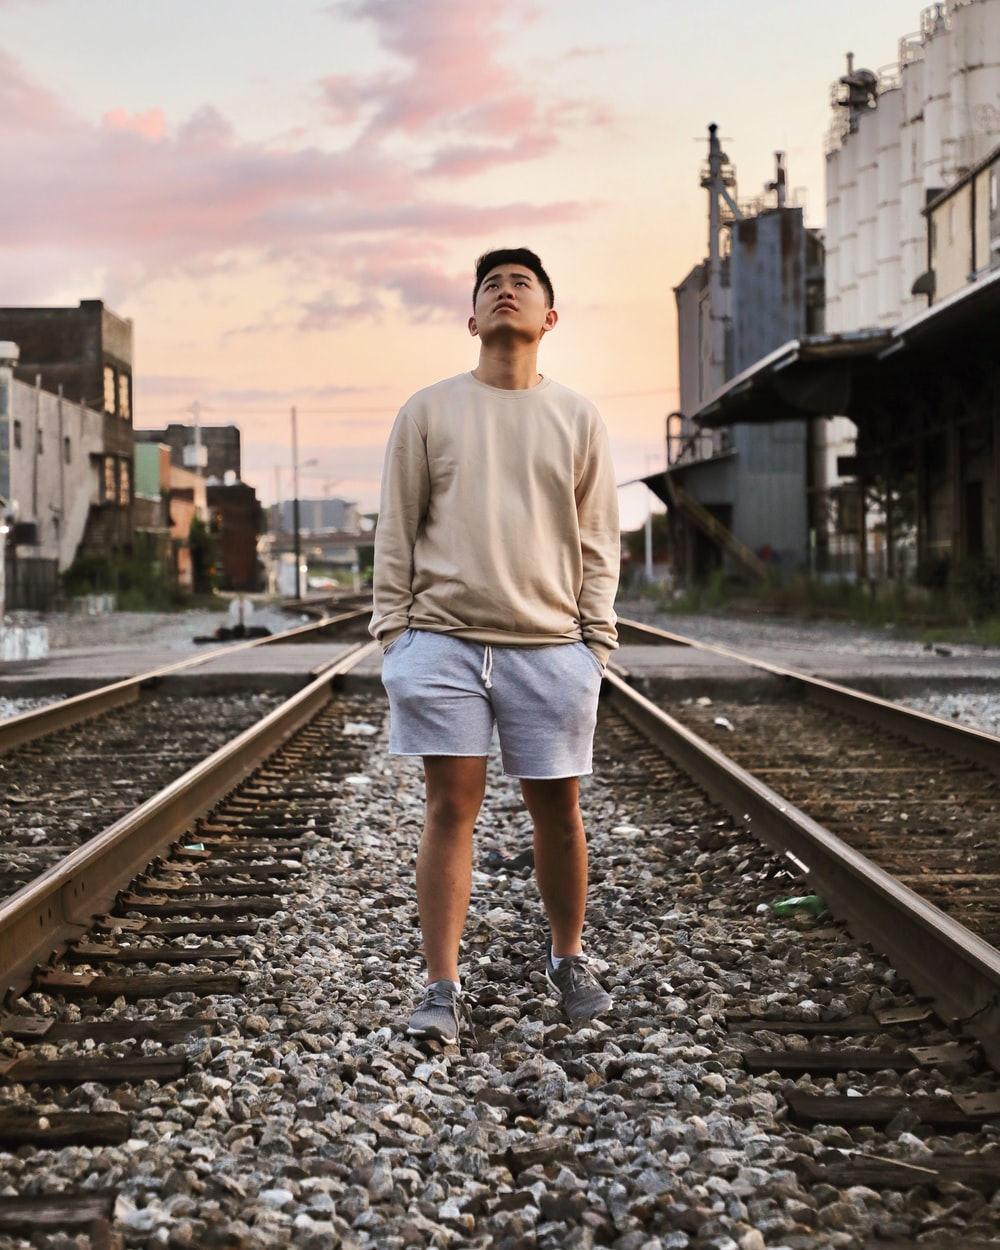 man wearing gray sweater standing on railway looking up